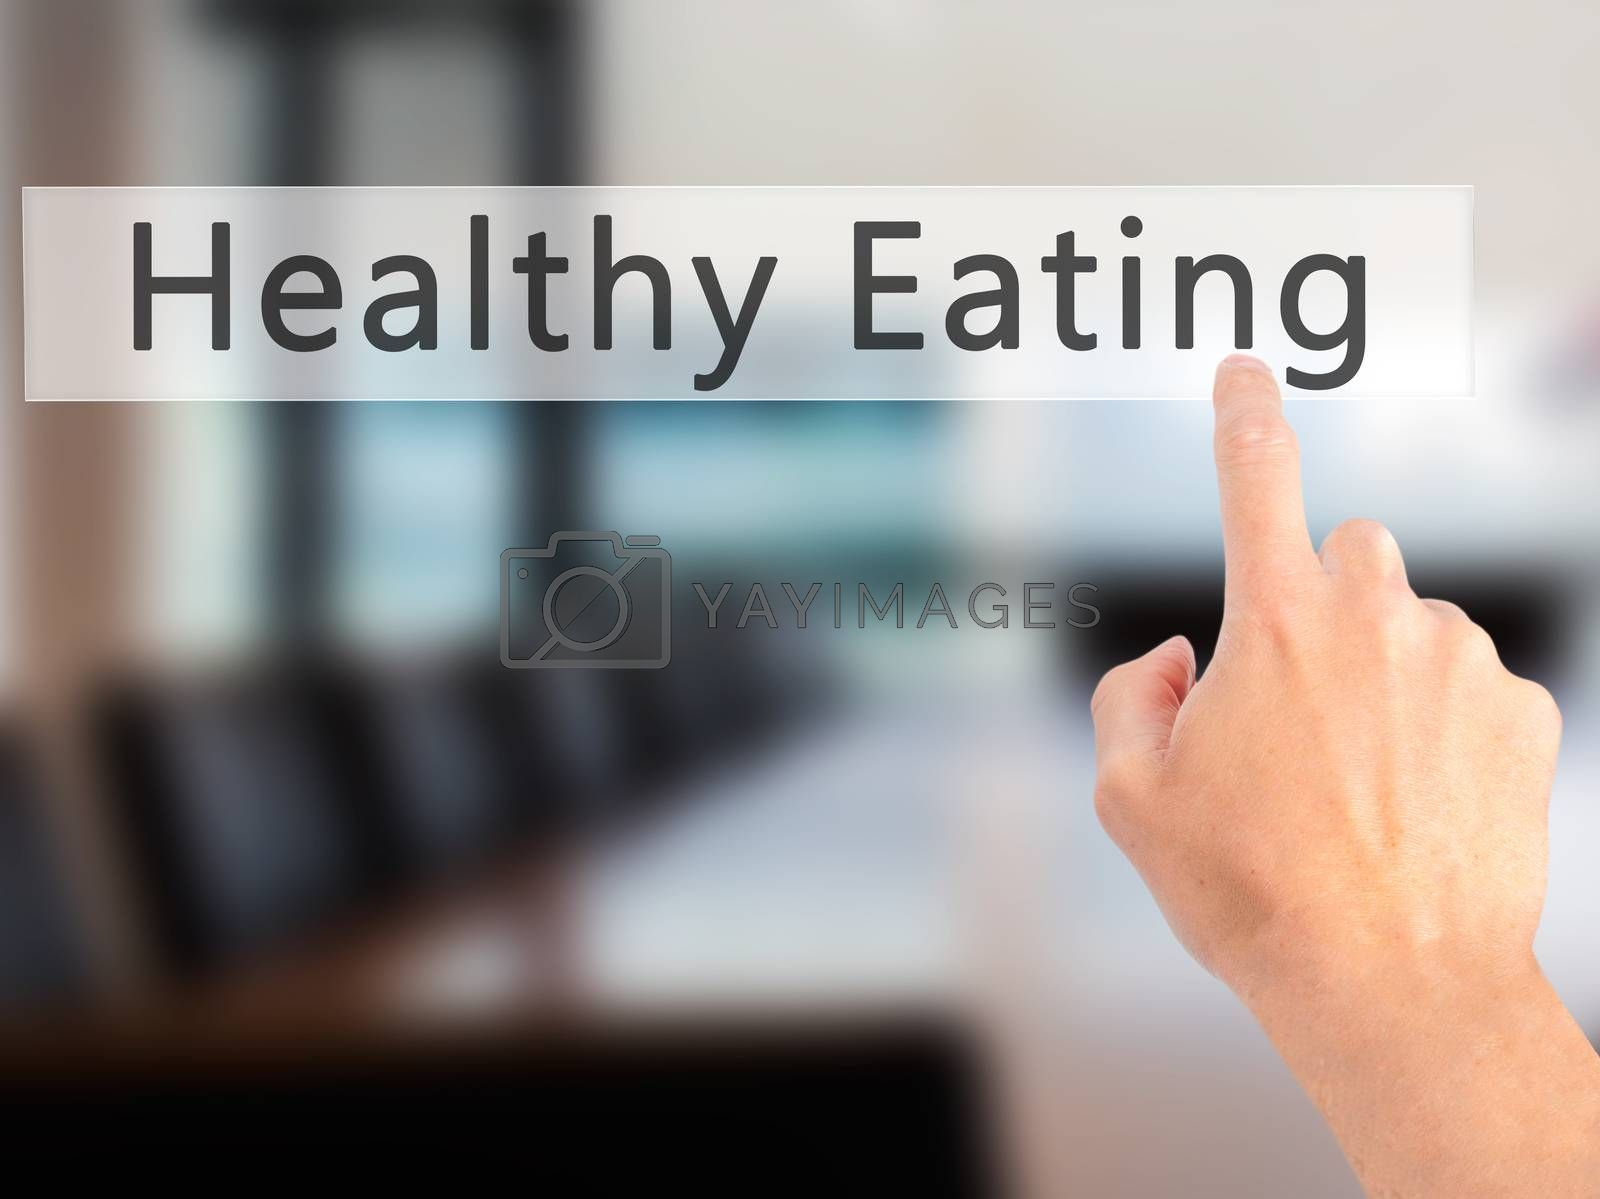 Healthy Eating - Hand pressing a button on blurred background co by jackald